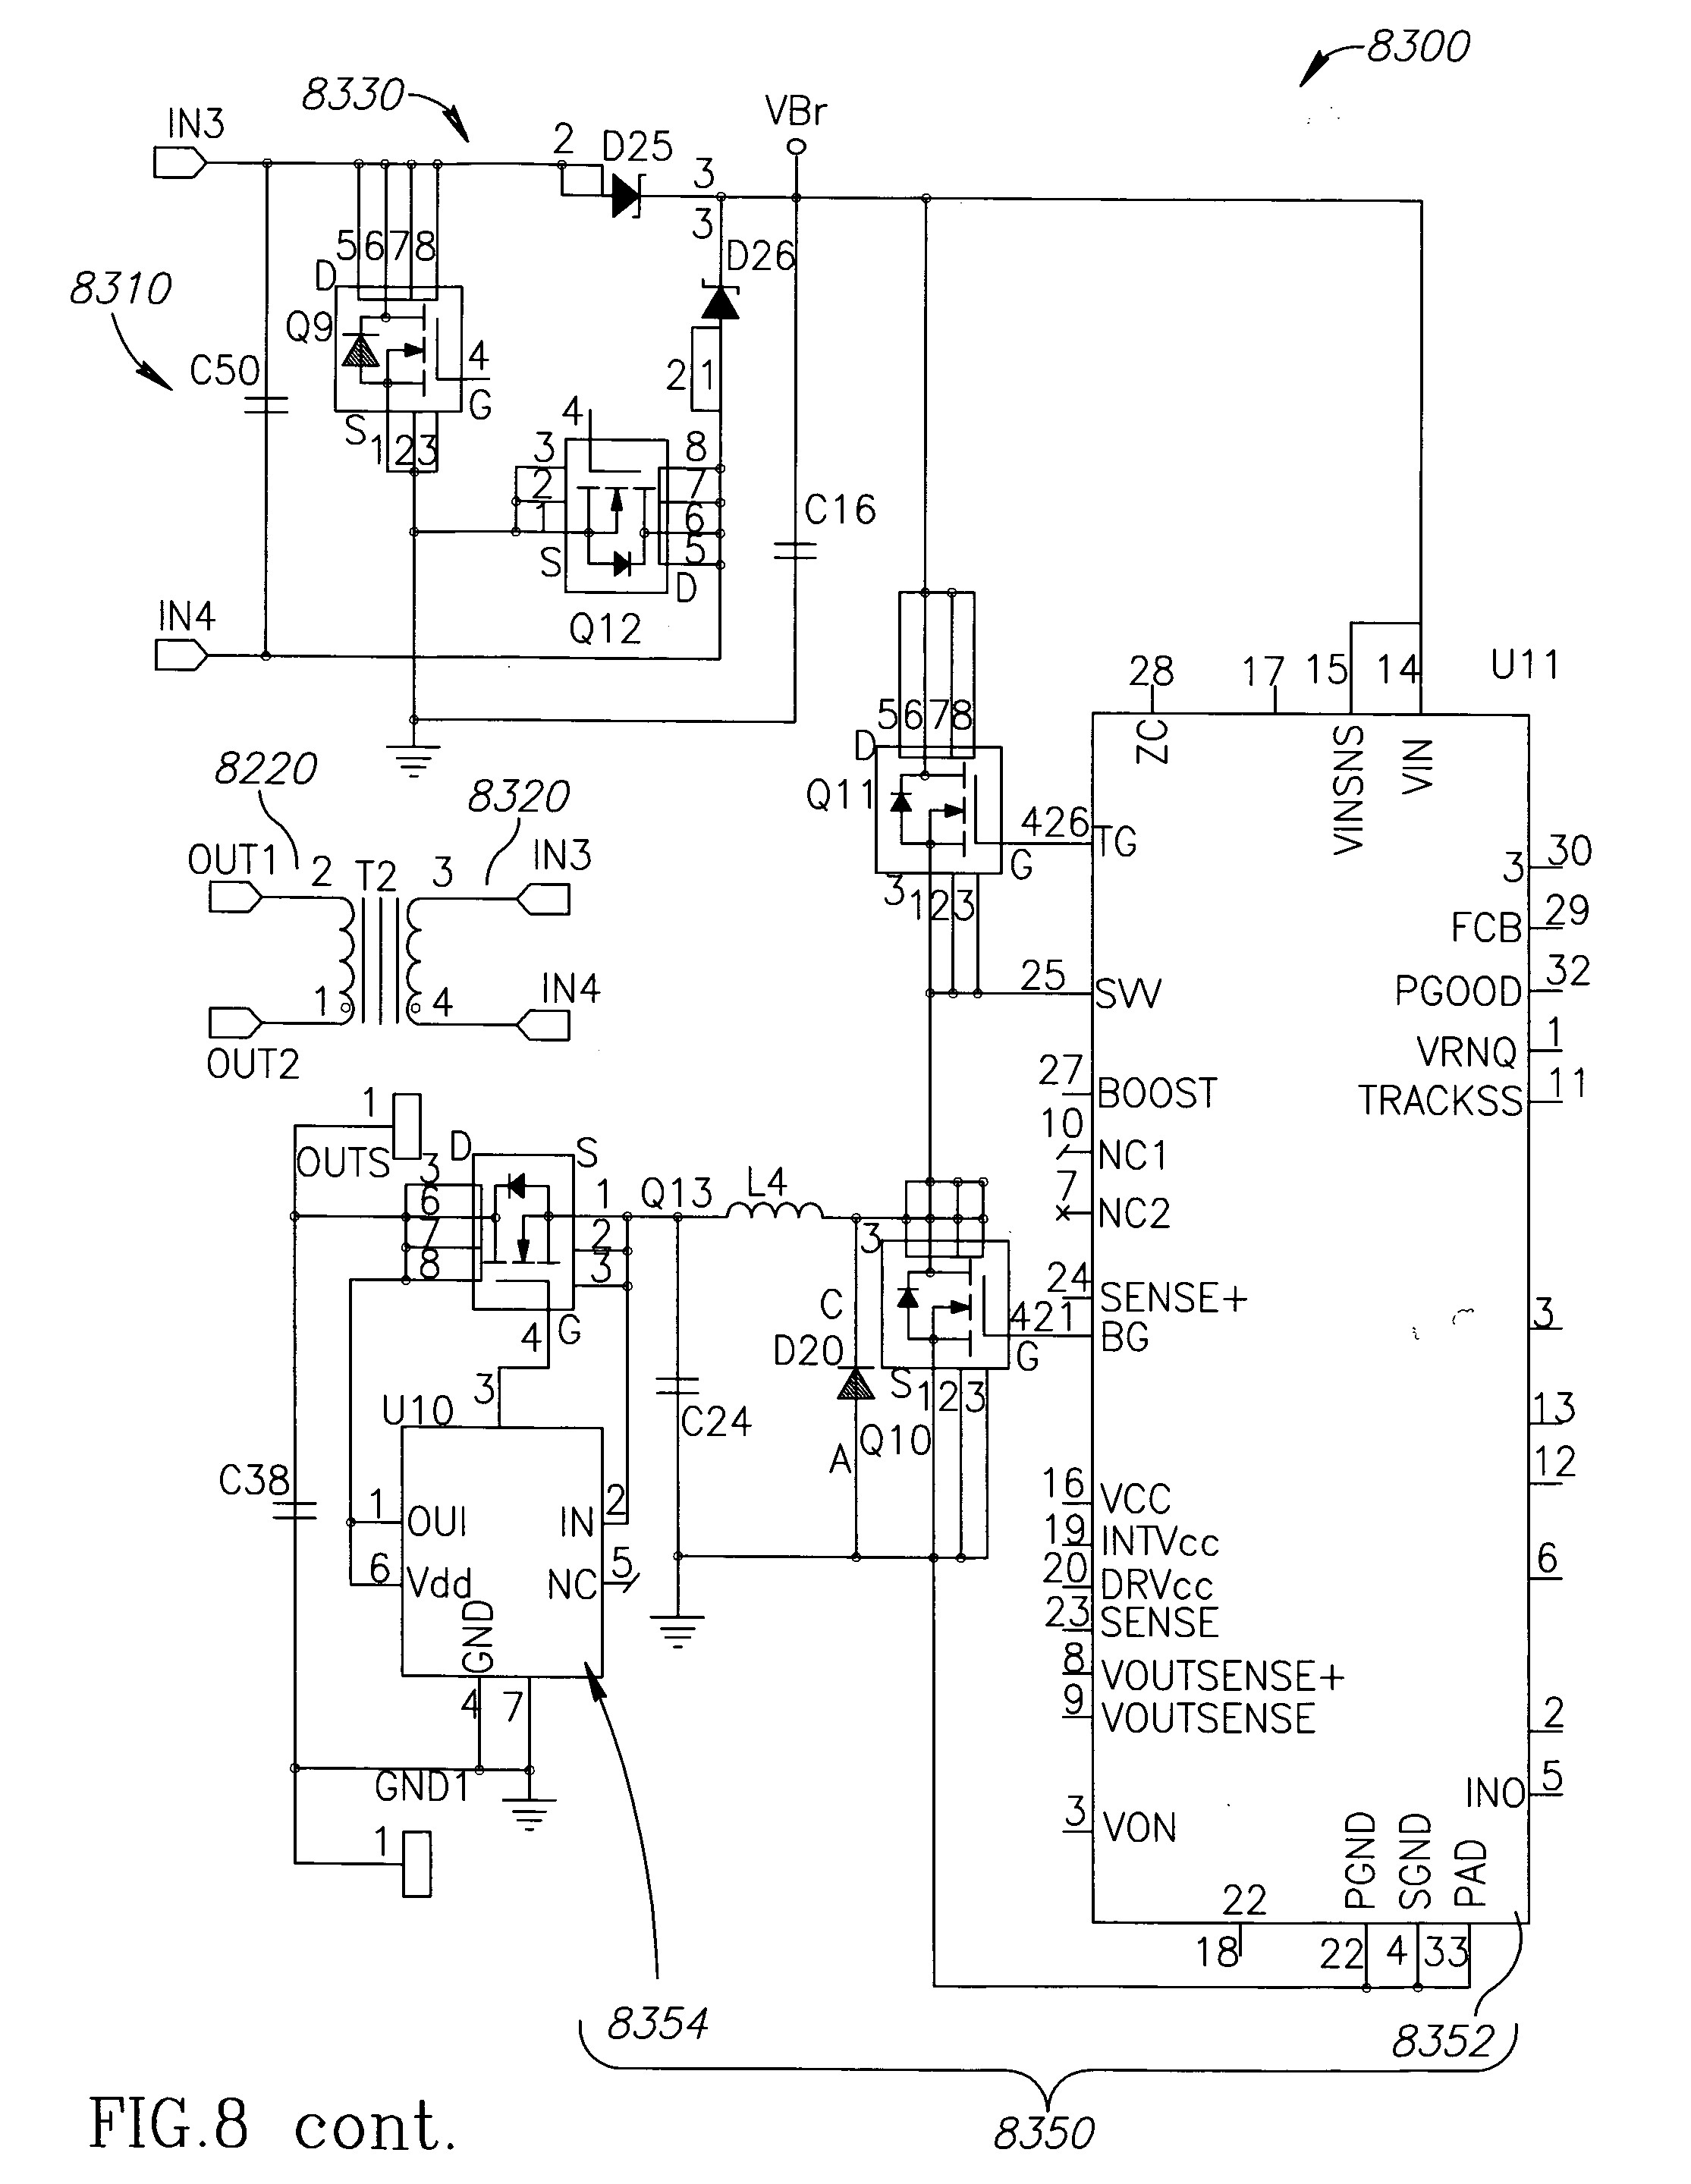 Shaver Socket Wiring Diagram, Shaver, Free Engine Image